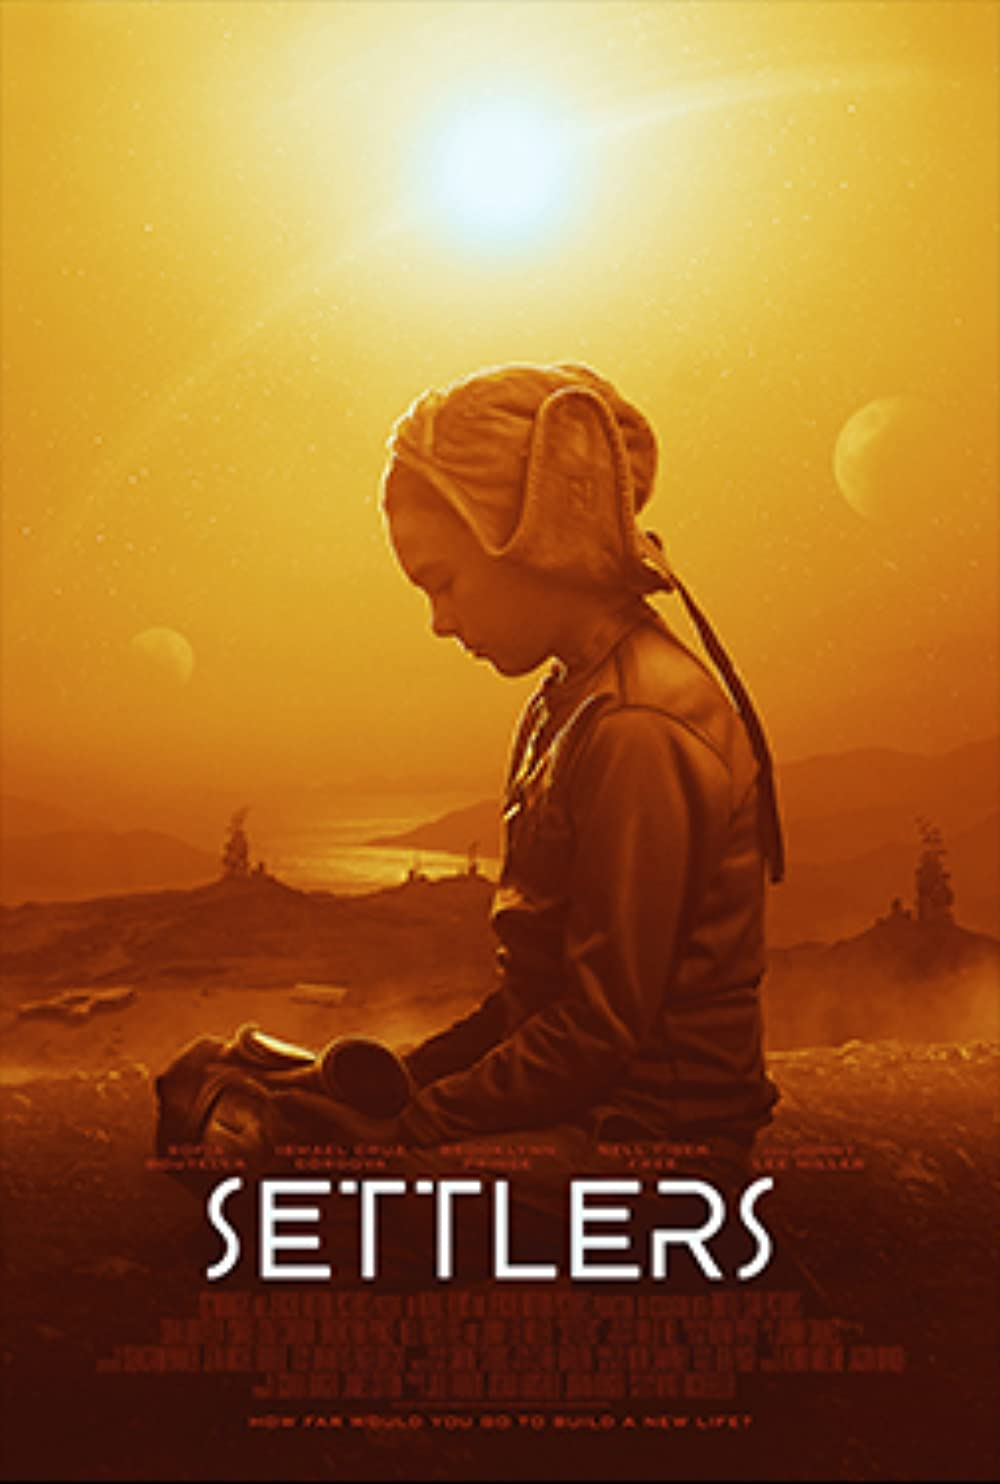 Download Settlers (2021) Bengali Dubbed (Voice Over) WEBRip 720p [Full Movie] 1XBET Full Movie Online On 1xcinema.com